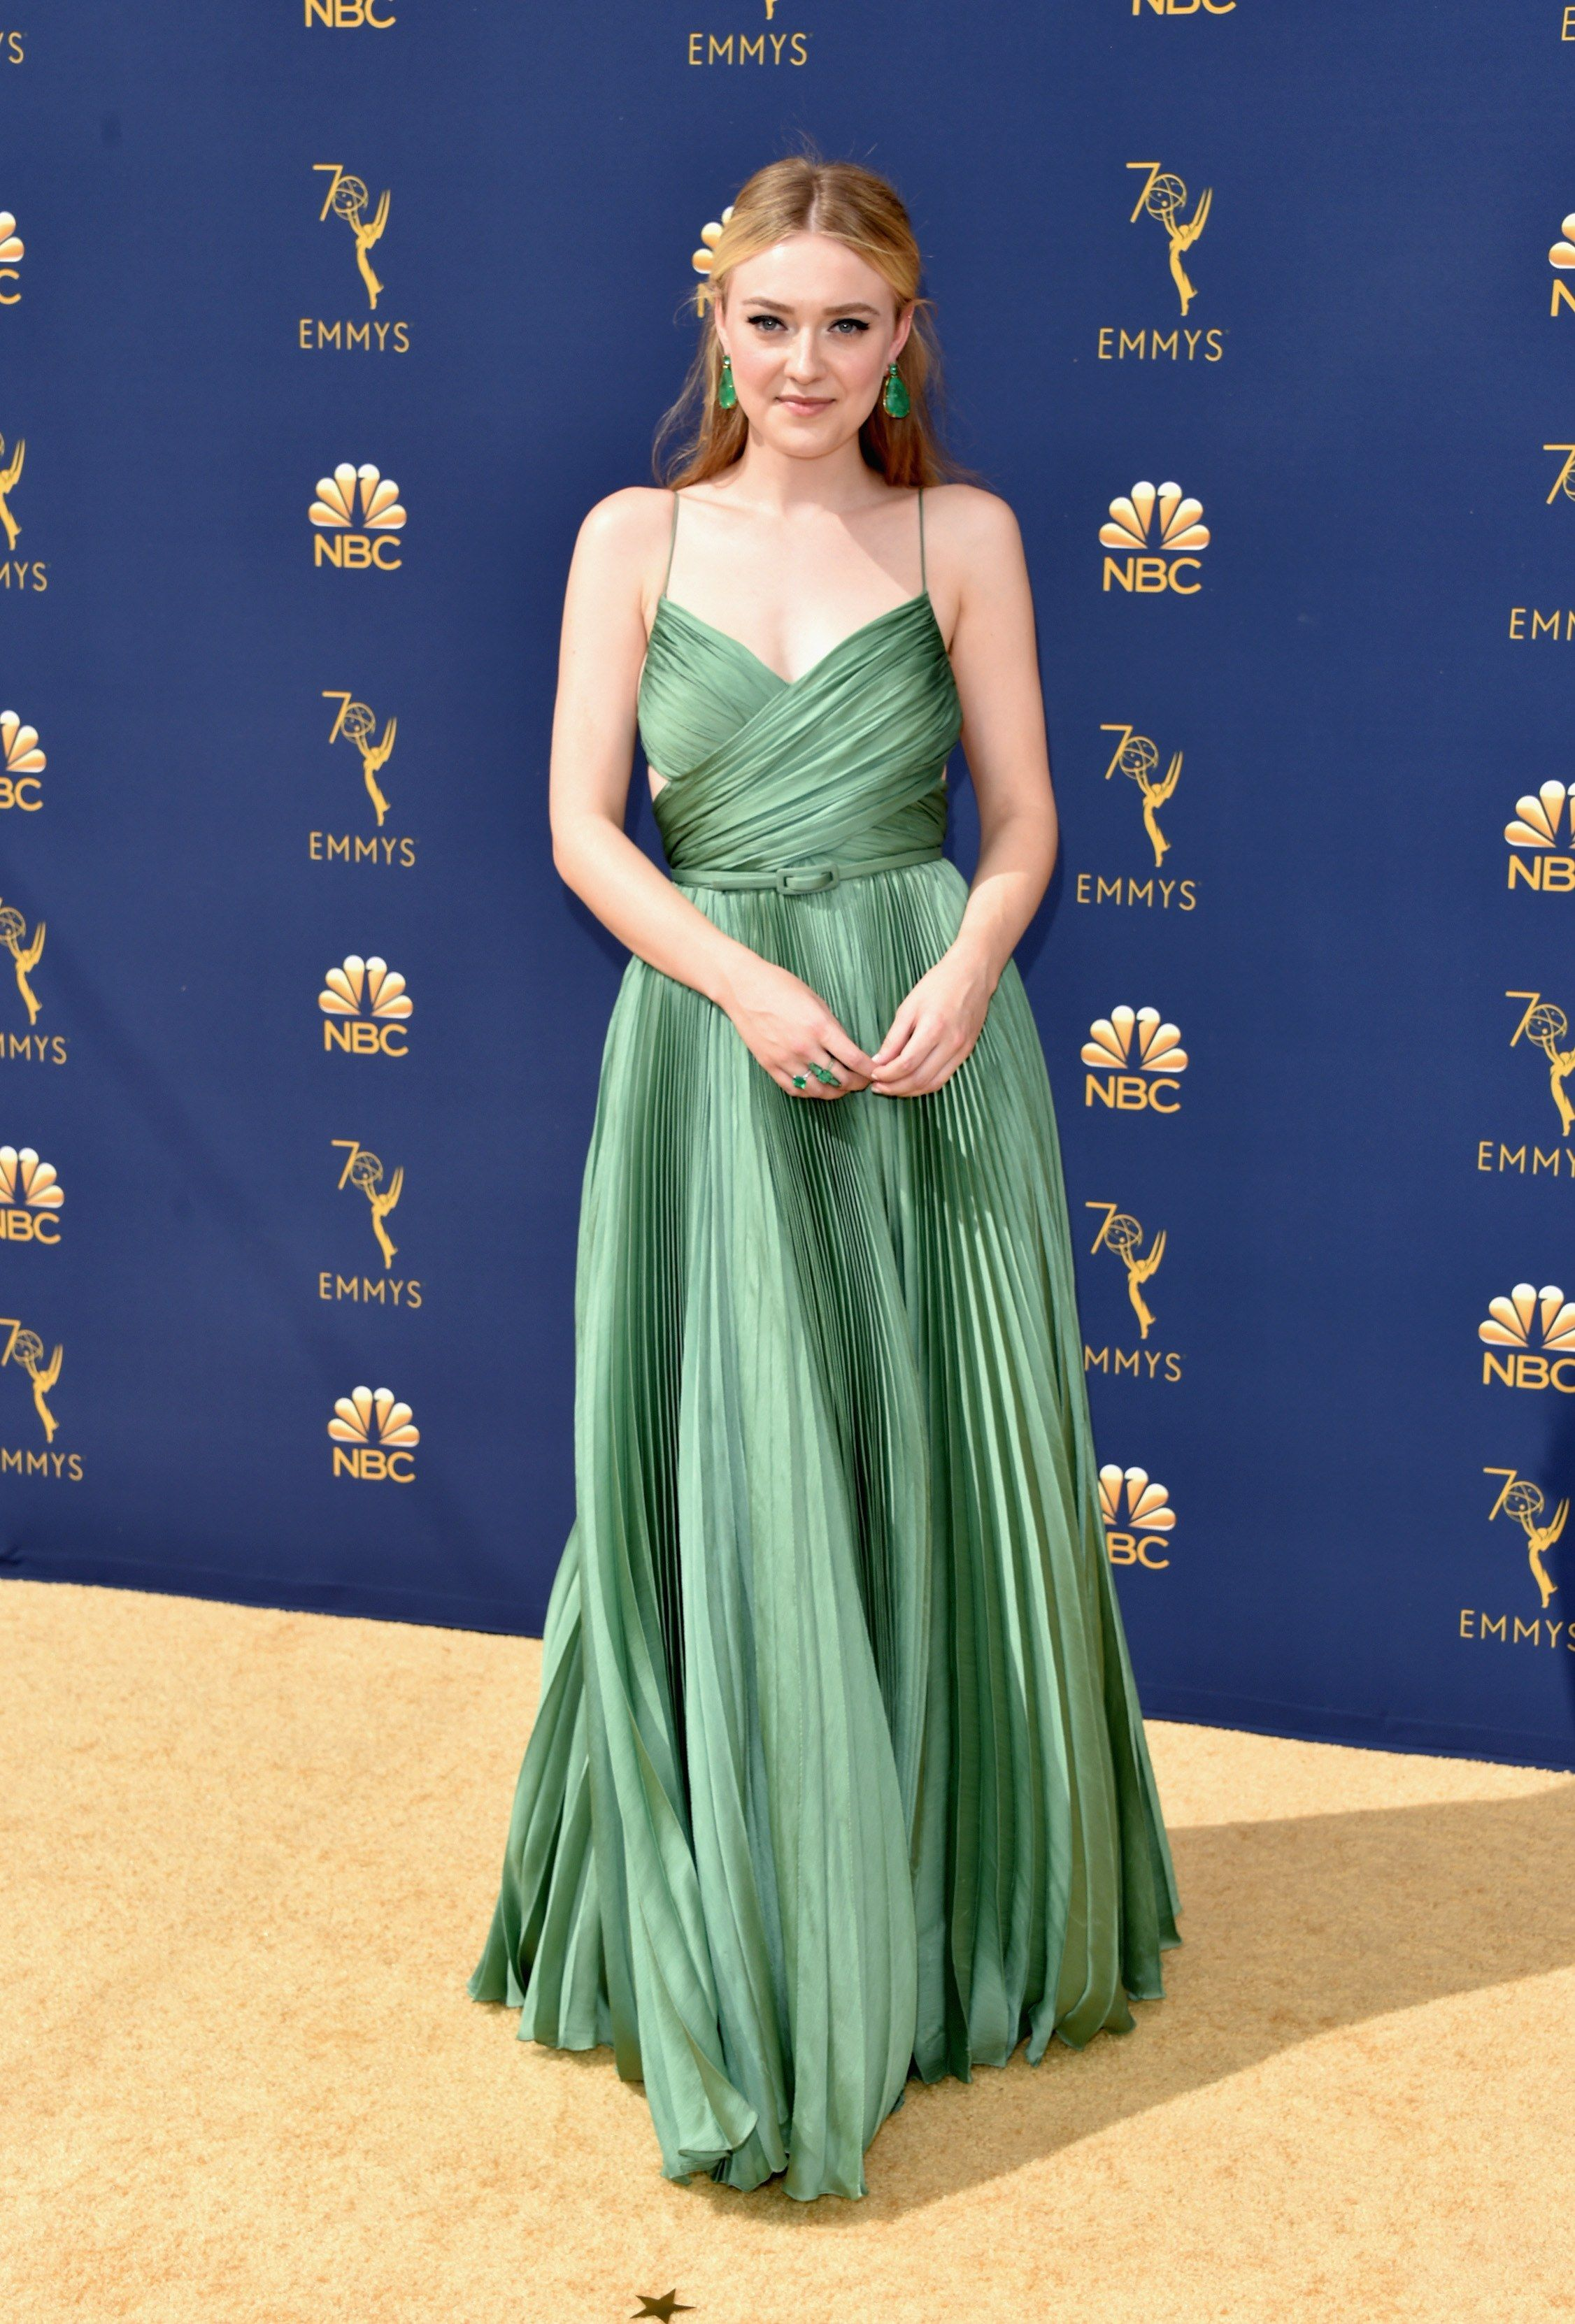 9d2f282af The 25 Best Looks From the 2018 Emmys Red Carpet in 2019